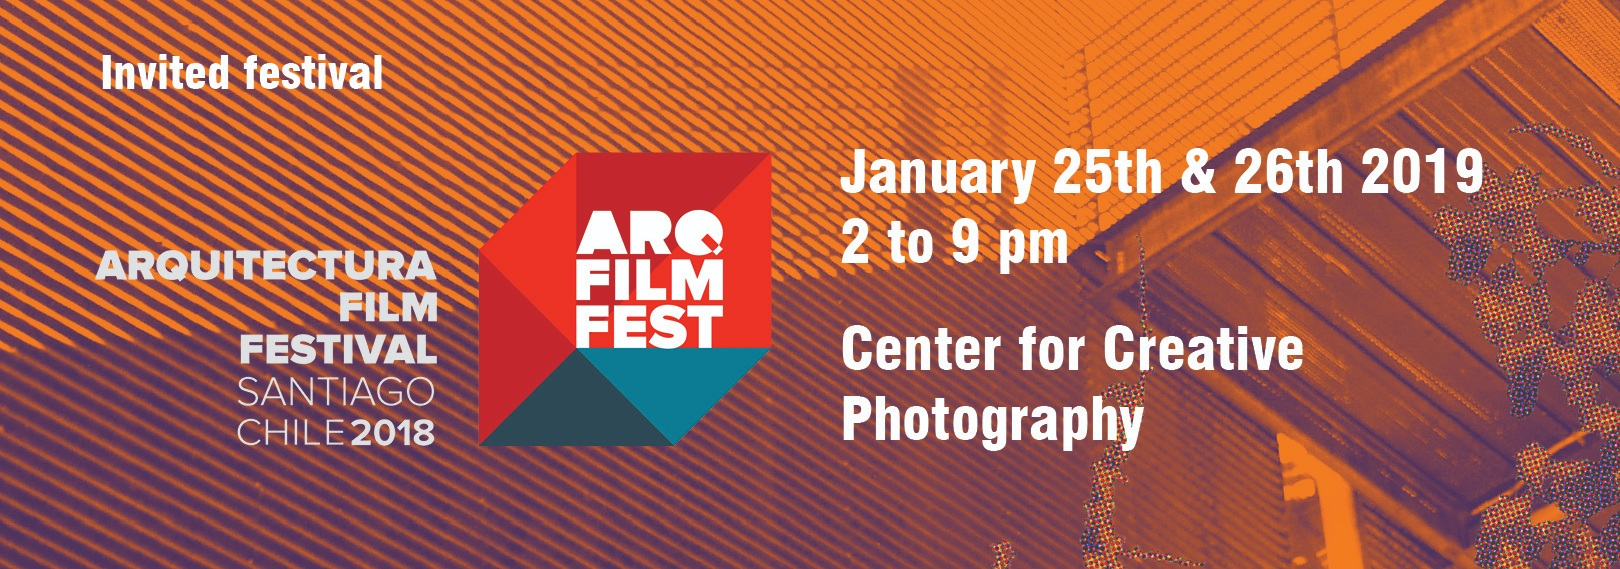 Arch+Film+Fest+Tucson+2019+V03+PROGRAM+B9.jpg